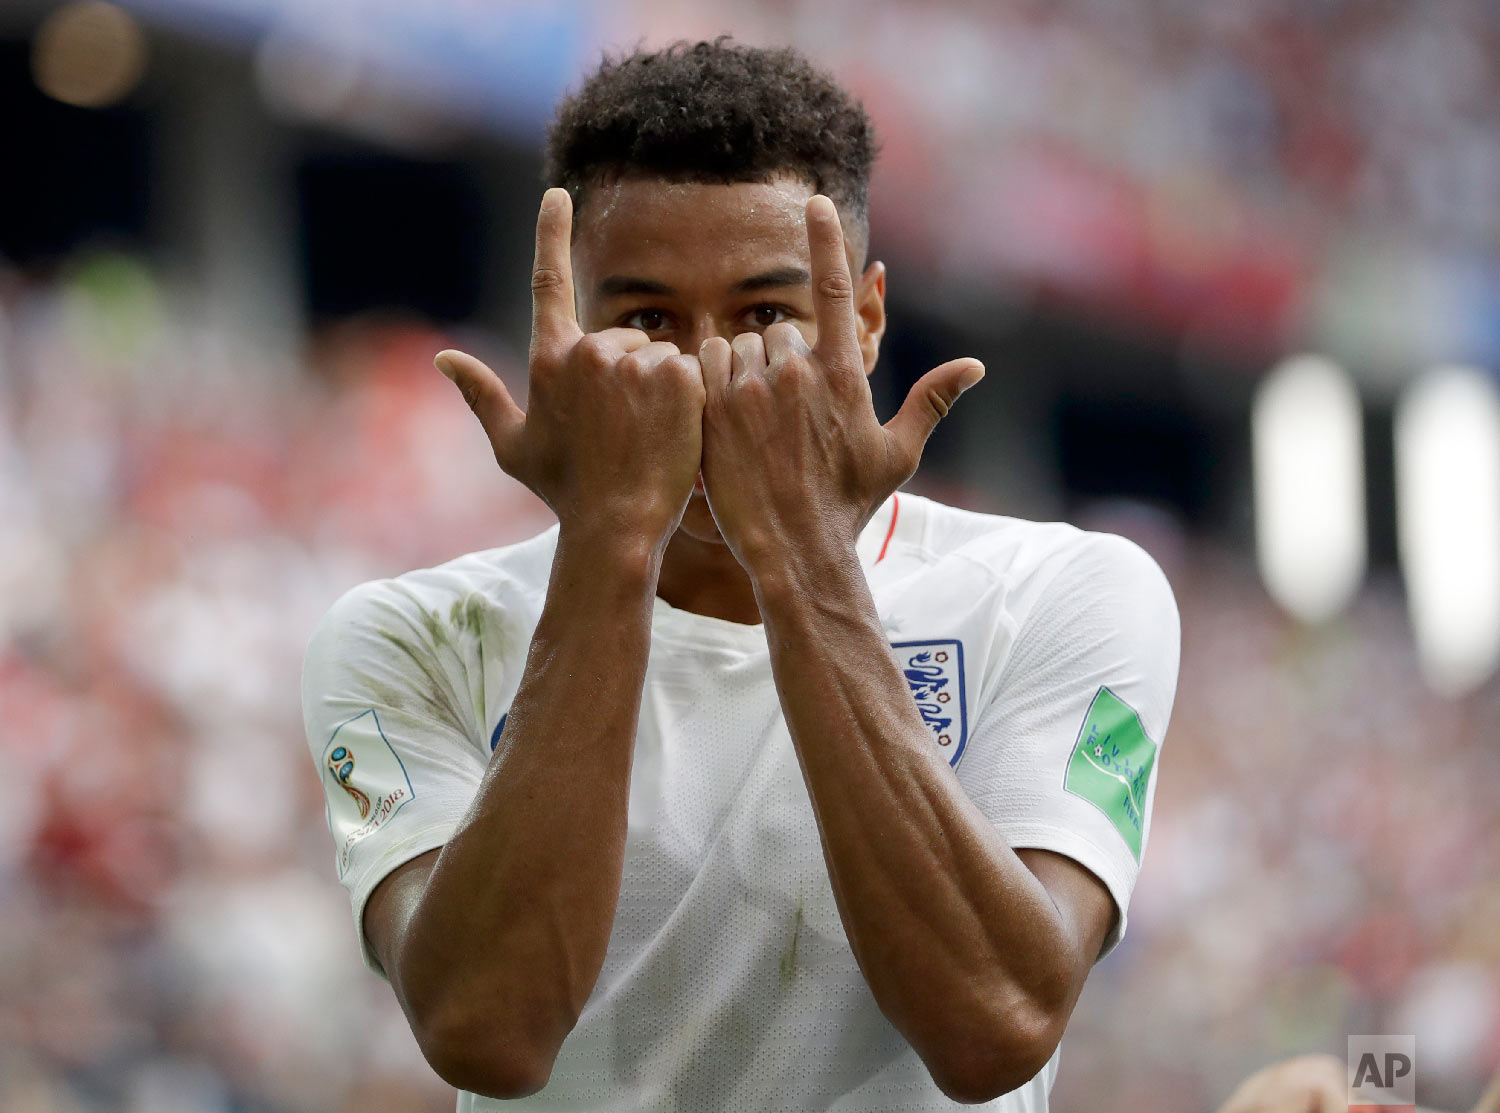 England's Jesse Lingard celebrates as he celebrates after scoring his team's third goal during the group G match between England and Panama at the 2018 soccer World Cup at the Nizhny Novgorod Stadium in Nizhny Novgorod , Russia on June 24, 2018. (AP Photo/Matthias Schrader)